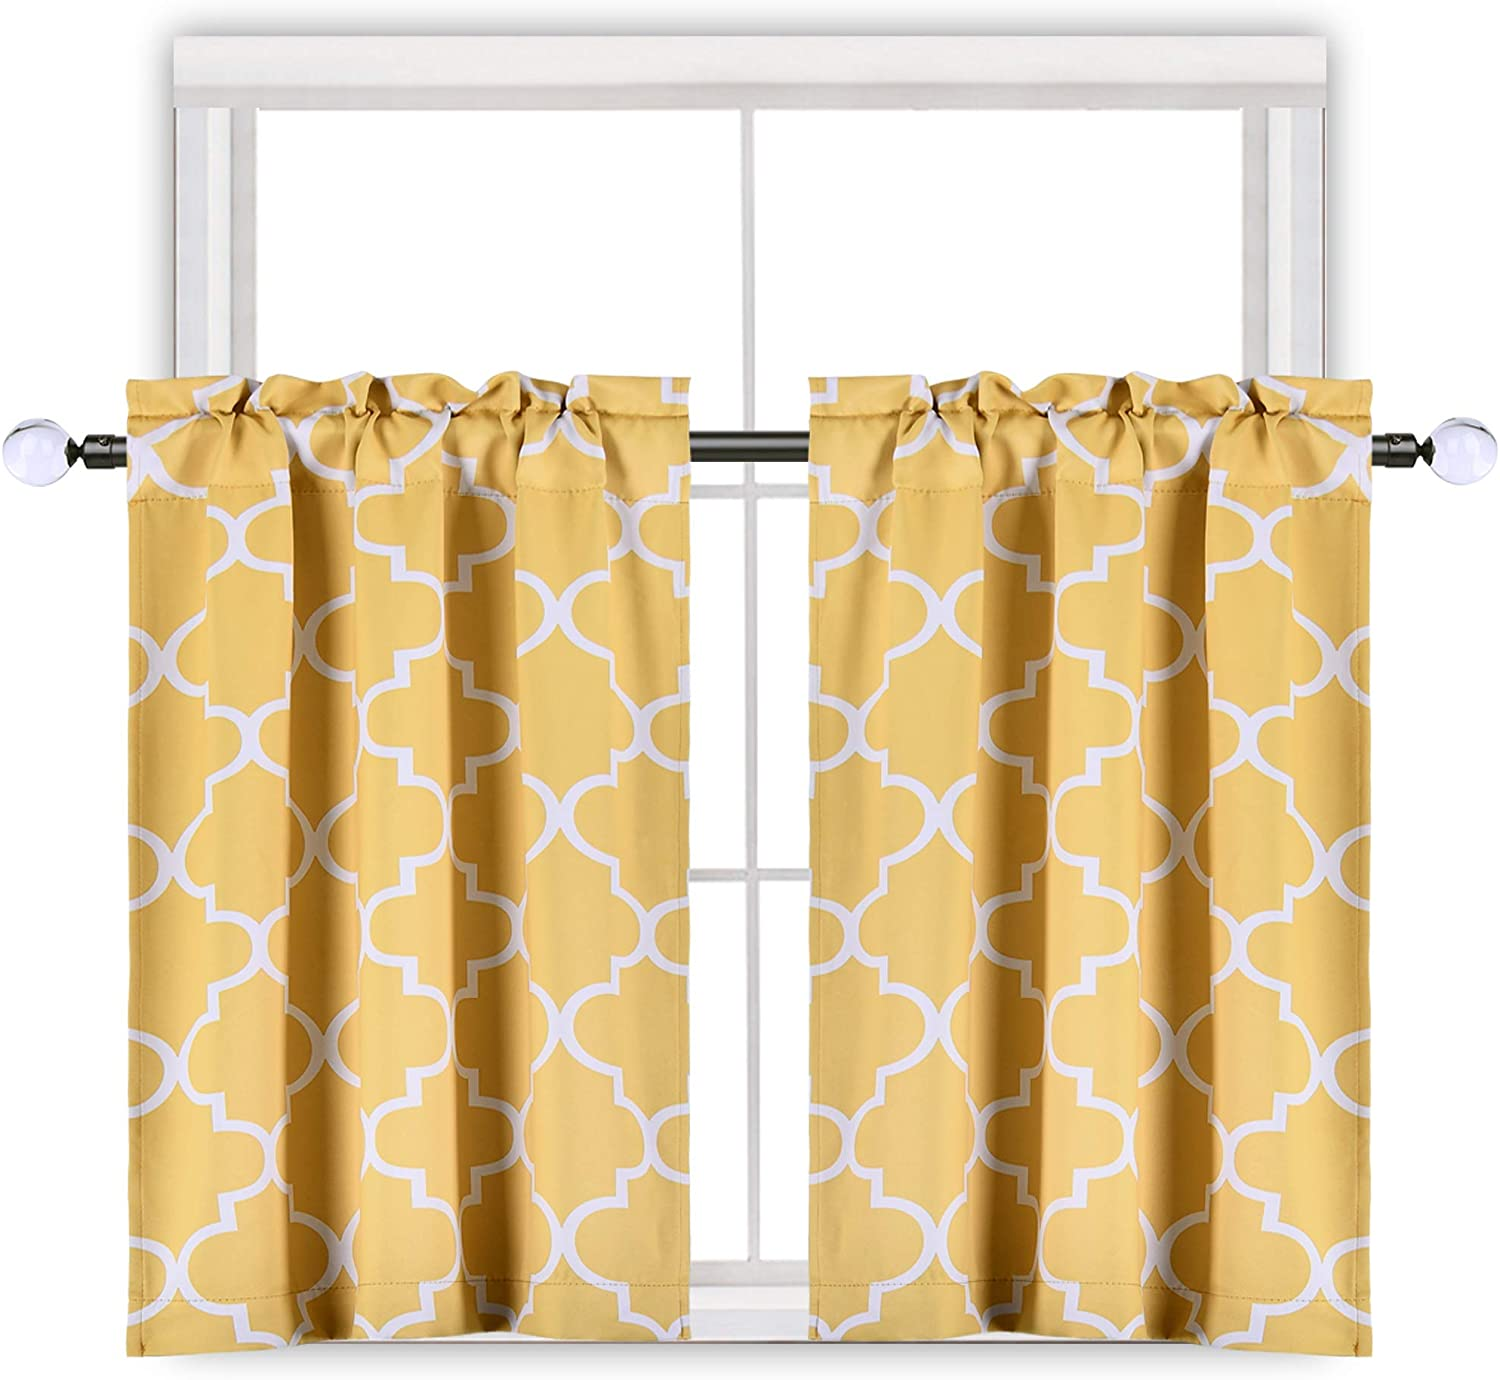 Moroccan Tile Print Blackout Curtain Tiers For Kitchen Window Quatrefoil Cafe Curtains 36 Inches Short Curtain For Bathroom With Rod Pocket 25 W X 36 L Inch 2 Panels Yellow Kitchen Dining